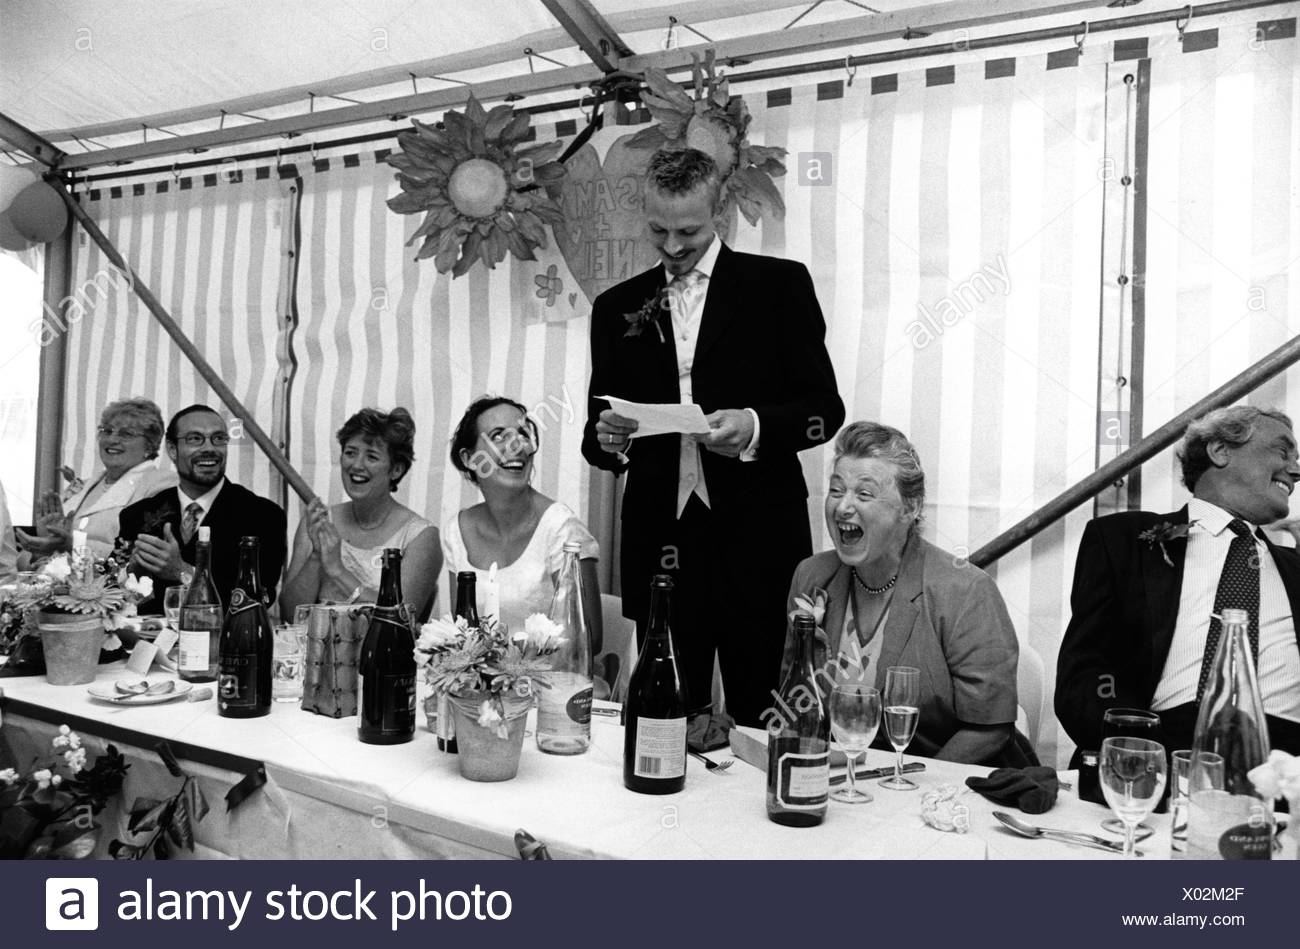 Groom Making Speech At Wedding Reception Uk Positive Use Only Stock